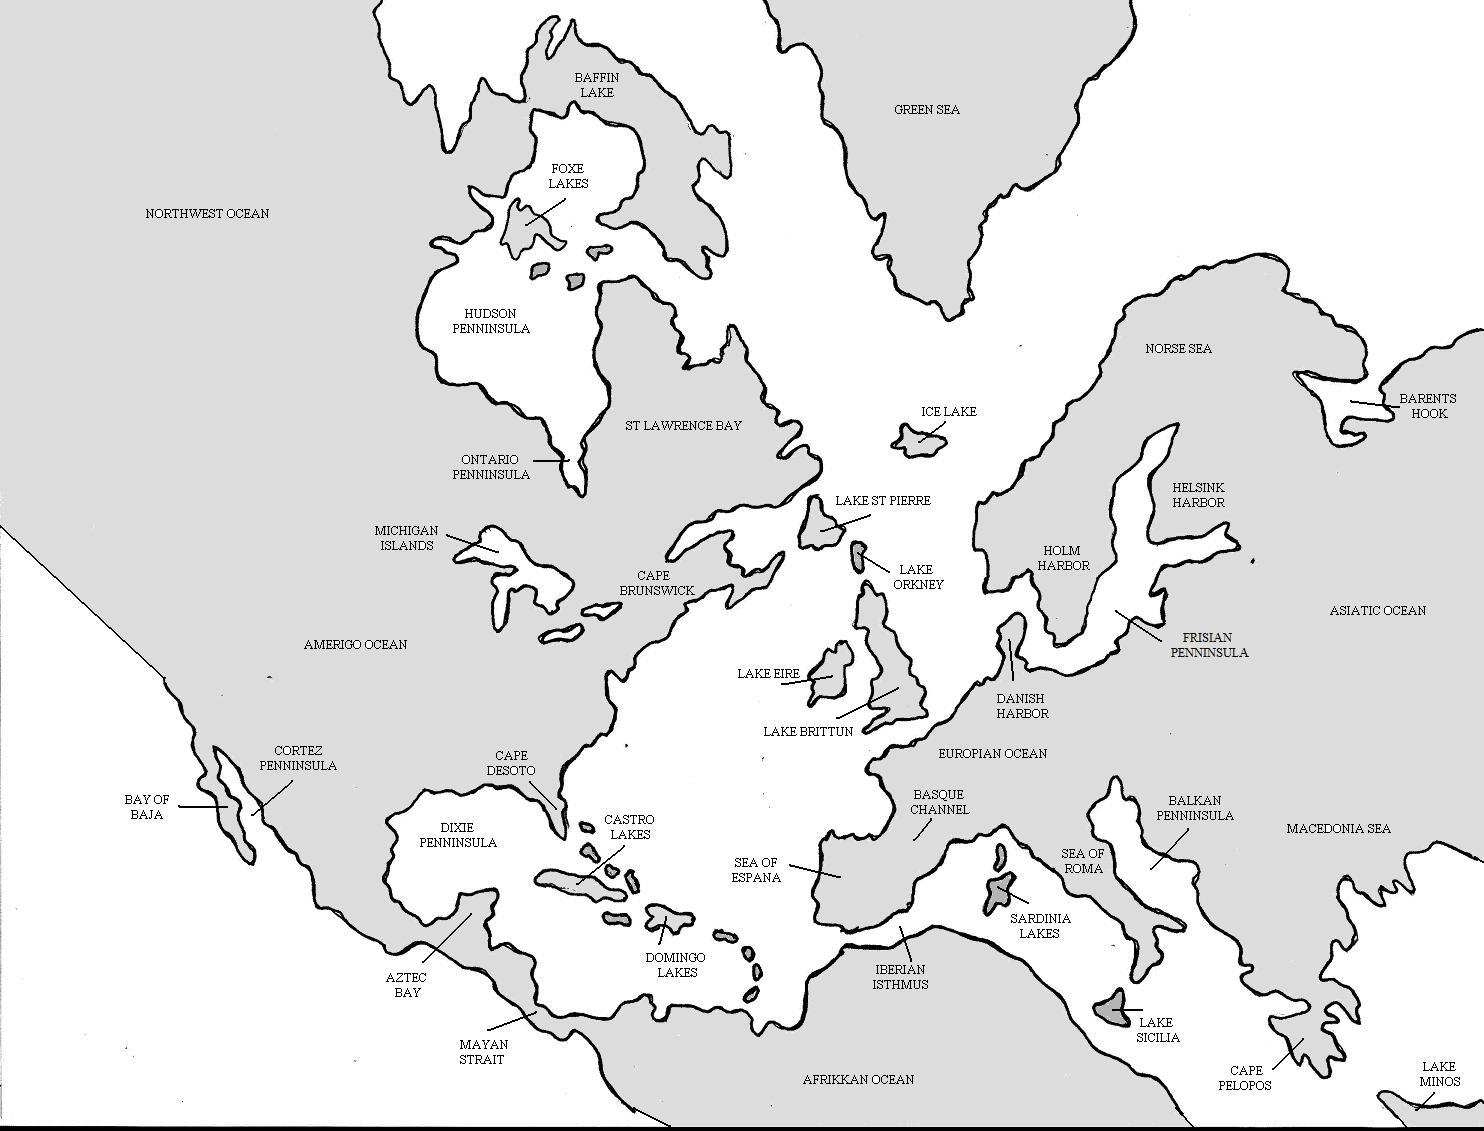 Atlantea: this one was a really fun time waster. Reverse the water/landmasses of an Atlantic map. The most interesting thing I did with it was to narrow it, making S America and Africa one continent. You can see I kept names of real places, but I don't know that all of them would stick if I actually concocted a story to go with it.